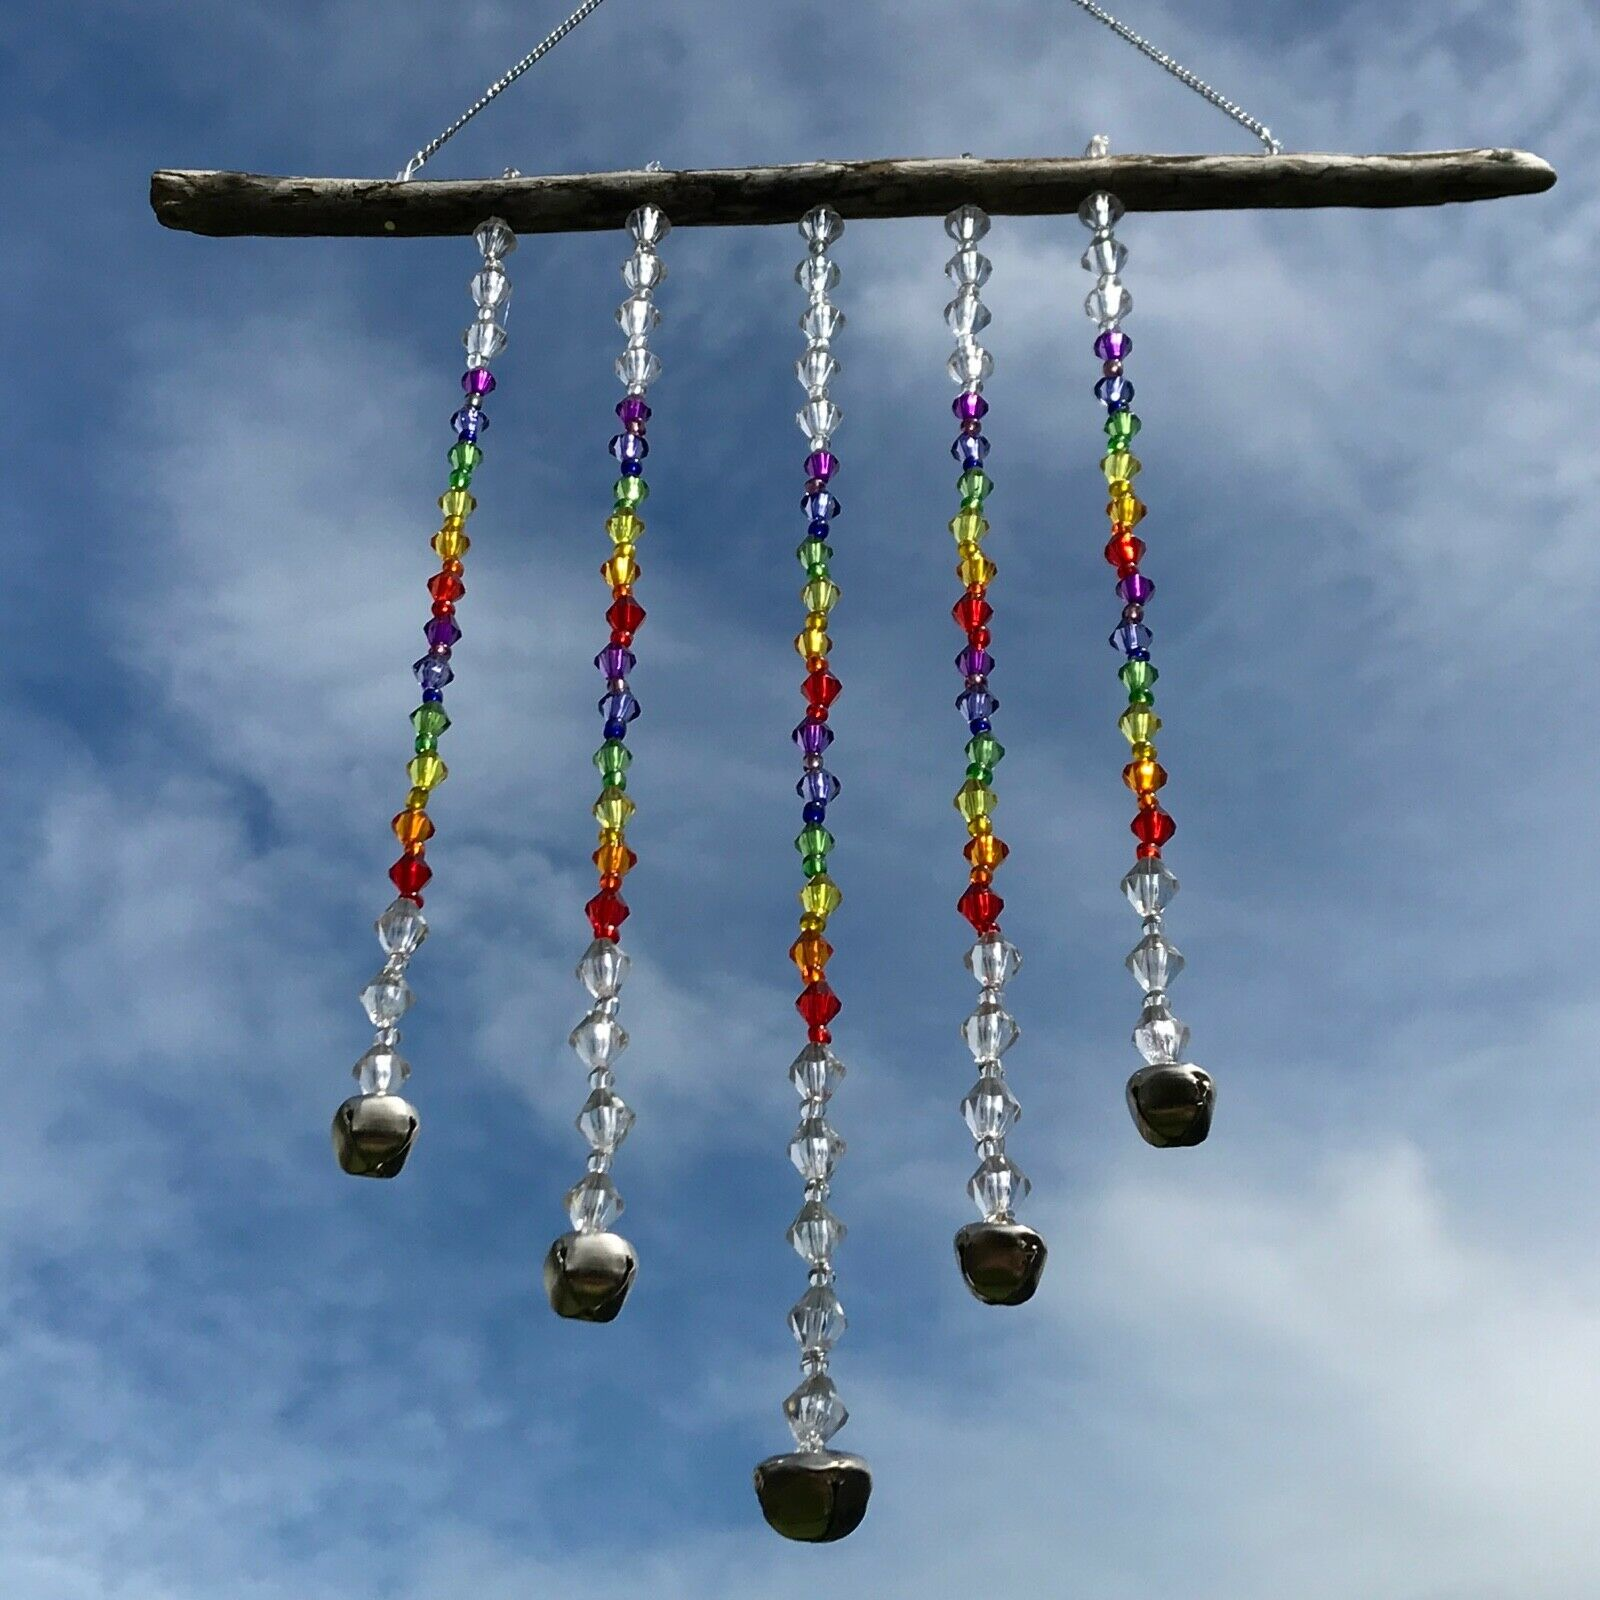 New Rustic Rainbow Beaded Silver Bells Wind Chime Hanging Mobile ~ Pride LGBTQ+